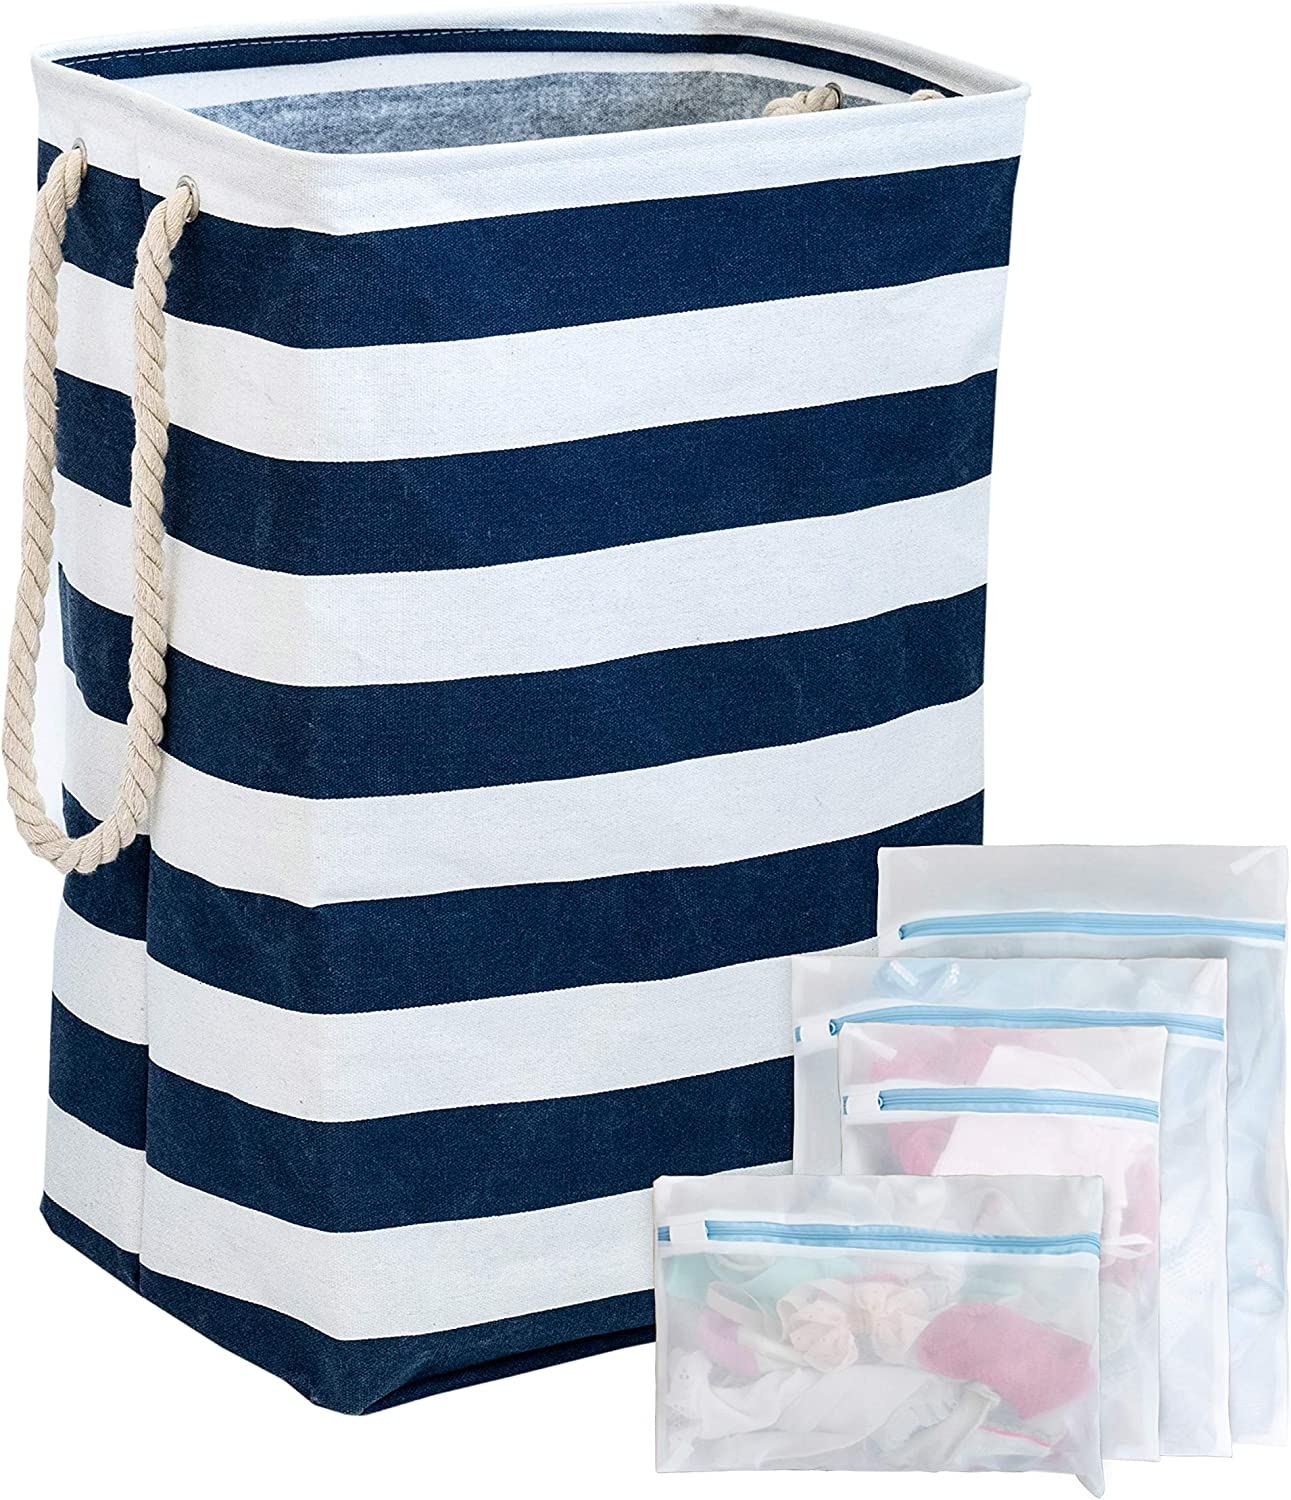 SMIRLY Large Laundry Basket Hamper: 23.6 Inch Tall Foldable Fabric Laundry Bin with White Rope Handles and 4 Cloth Mesh Laundry Bags - Collapsible Clothes and Toy Storage Baskets - Navy Blue Stripes